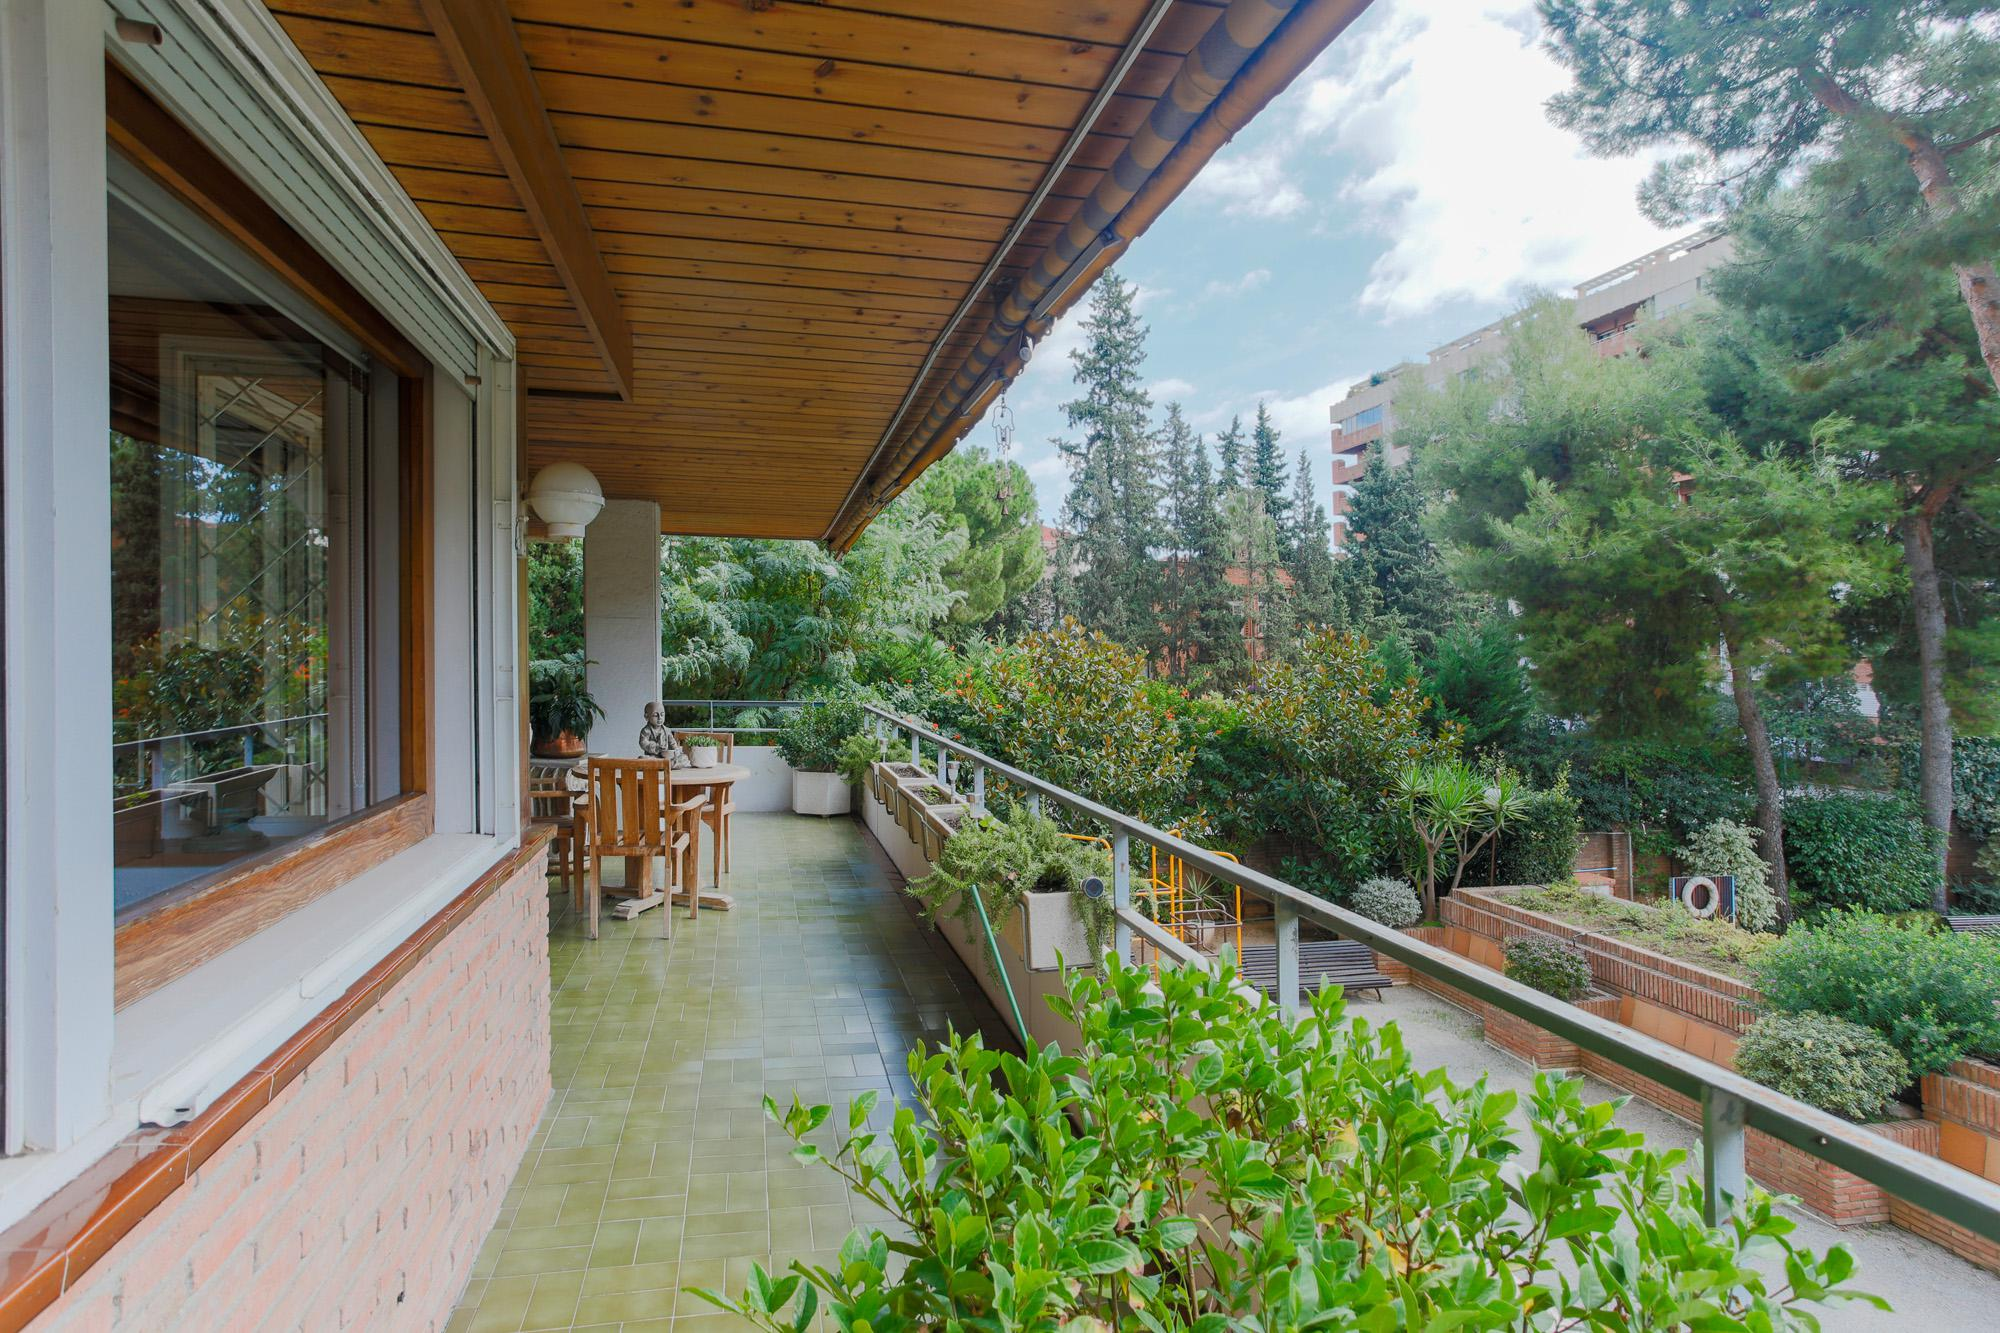 232863 Apartment for sale in Les Corts, Pedralbes 8